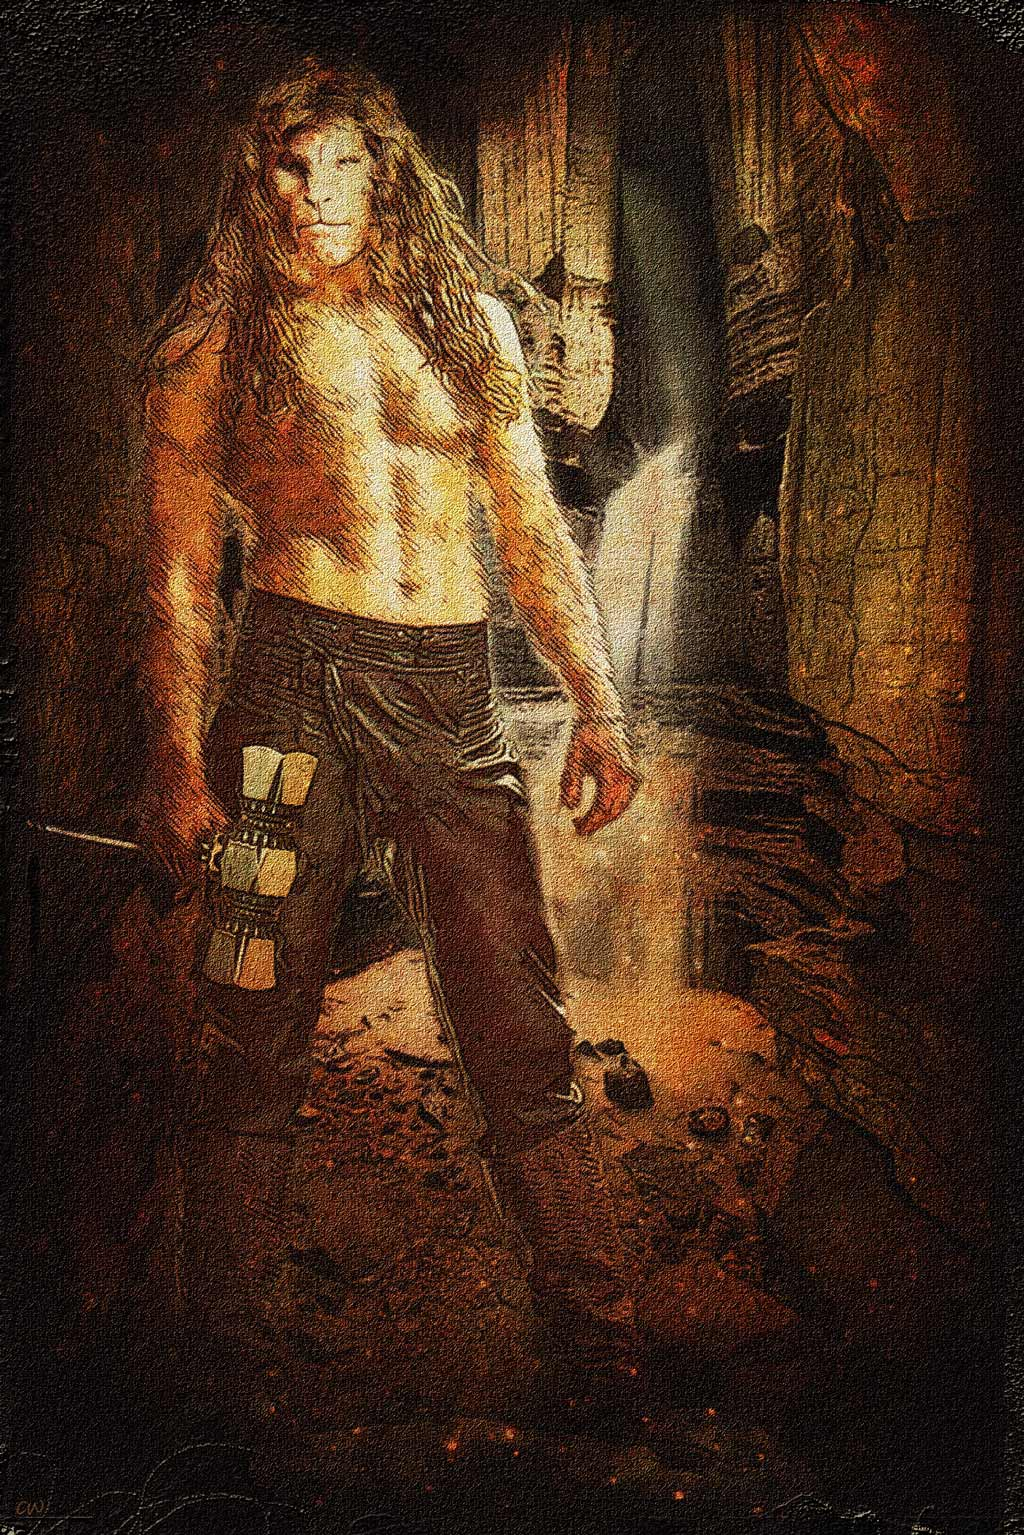 Vincent shirtless carrying a big hammer standing on a rock in a deep cavern.